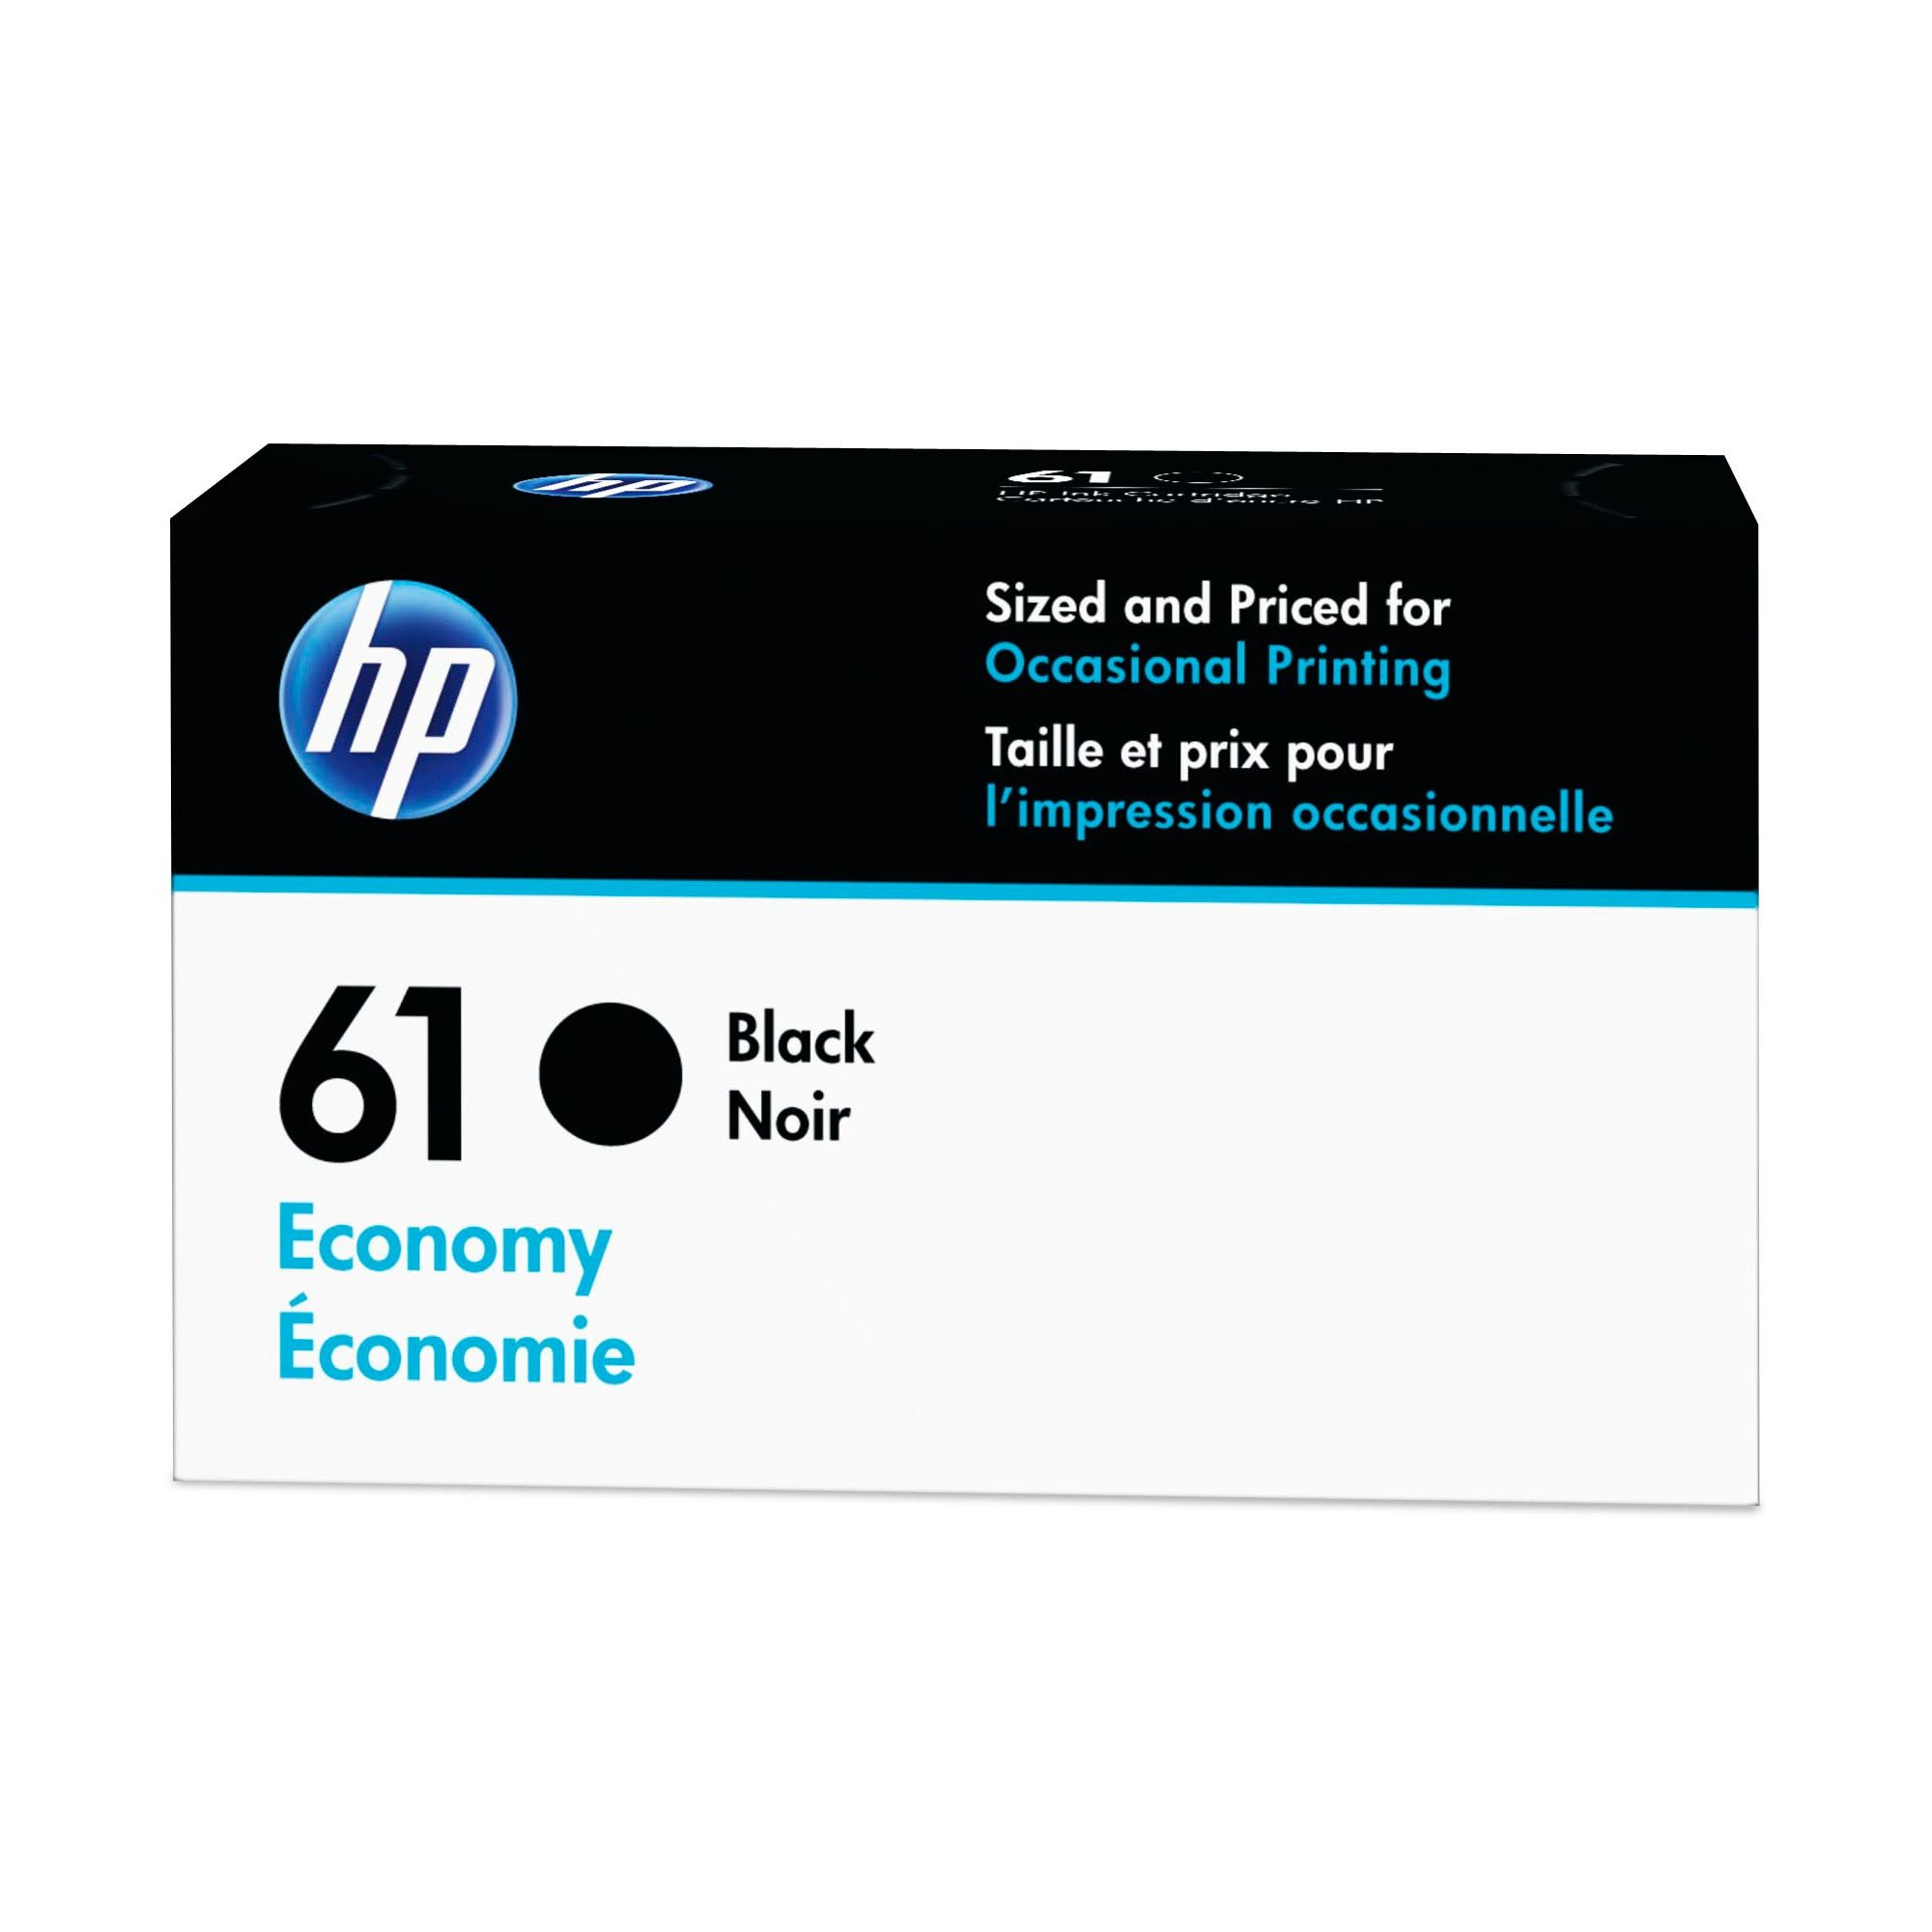 HP 61 Ink Cartridge Black Economy (B3B07AN) for HP Deskjet 1000 1010 1012 1050 1051 1055 1056 1510 1512 1514 1051 2050 2510 2512 2514 2540 2541 2542 2543 2544 2546 2547 3000 3050 3051 3052…